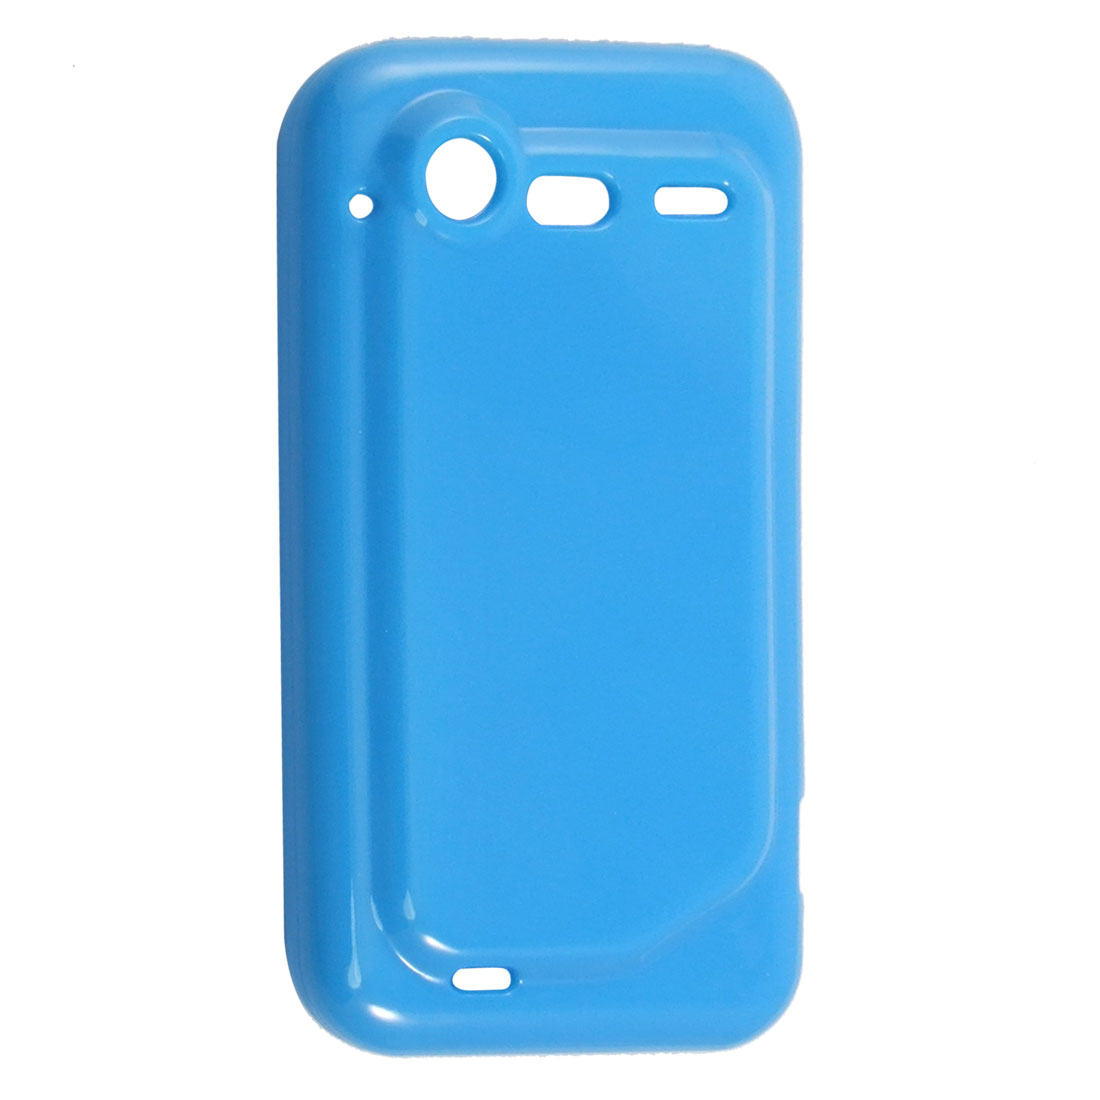 Soft Plastic Blue Guard Cover Protector Case for HTC Incredible S G11 S710e